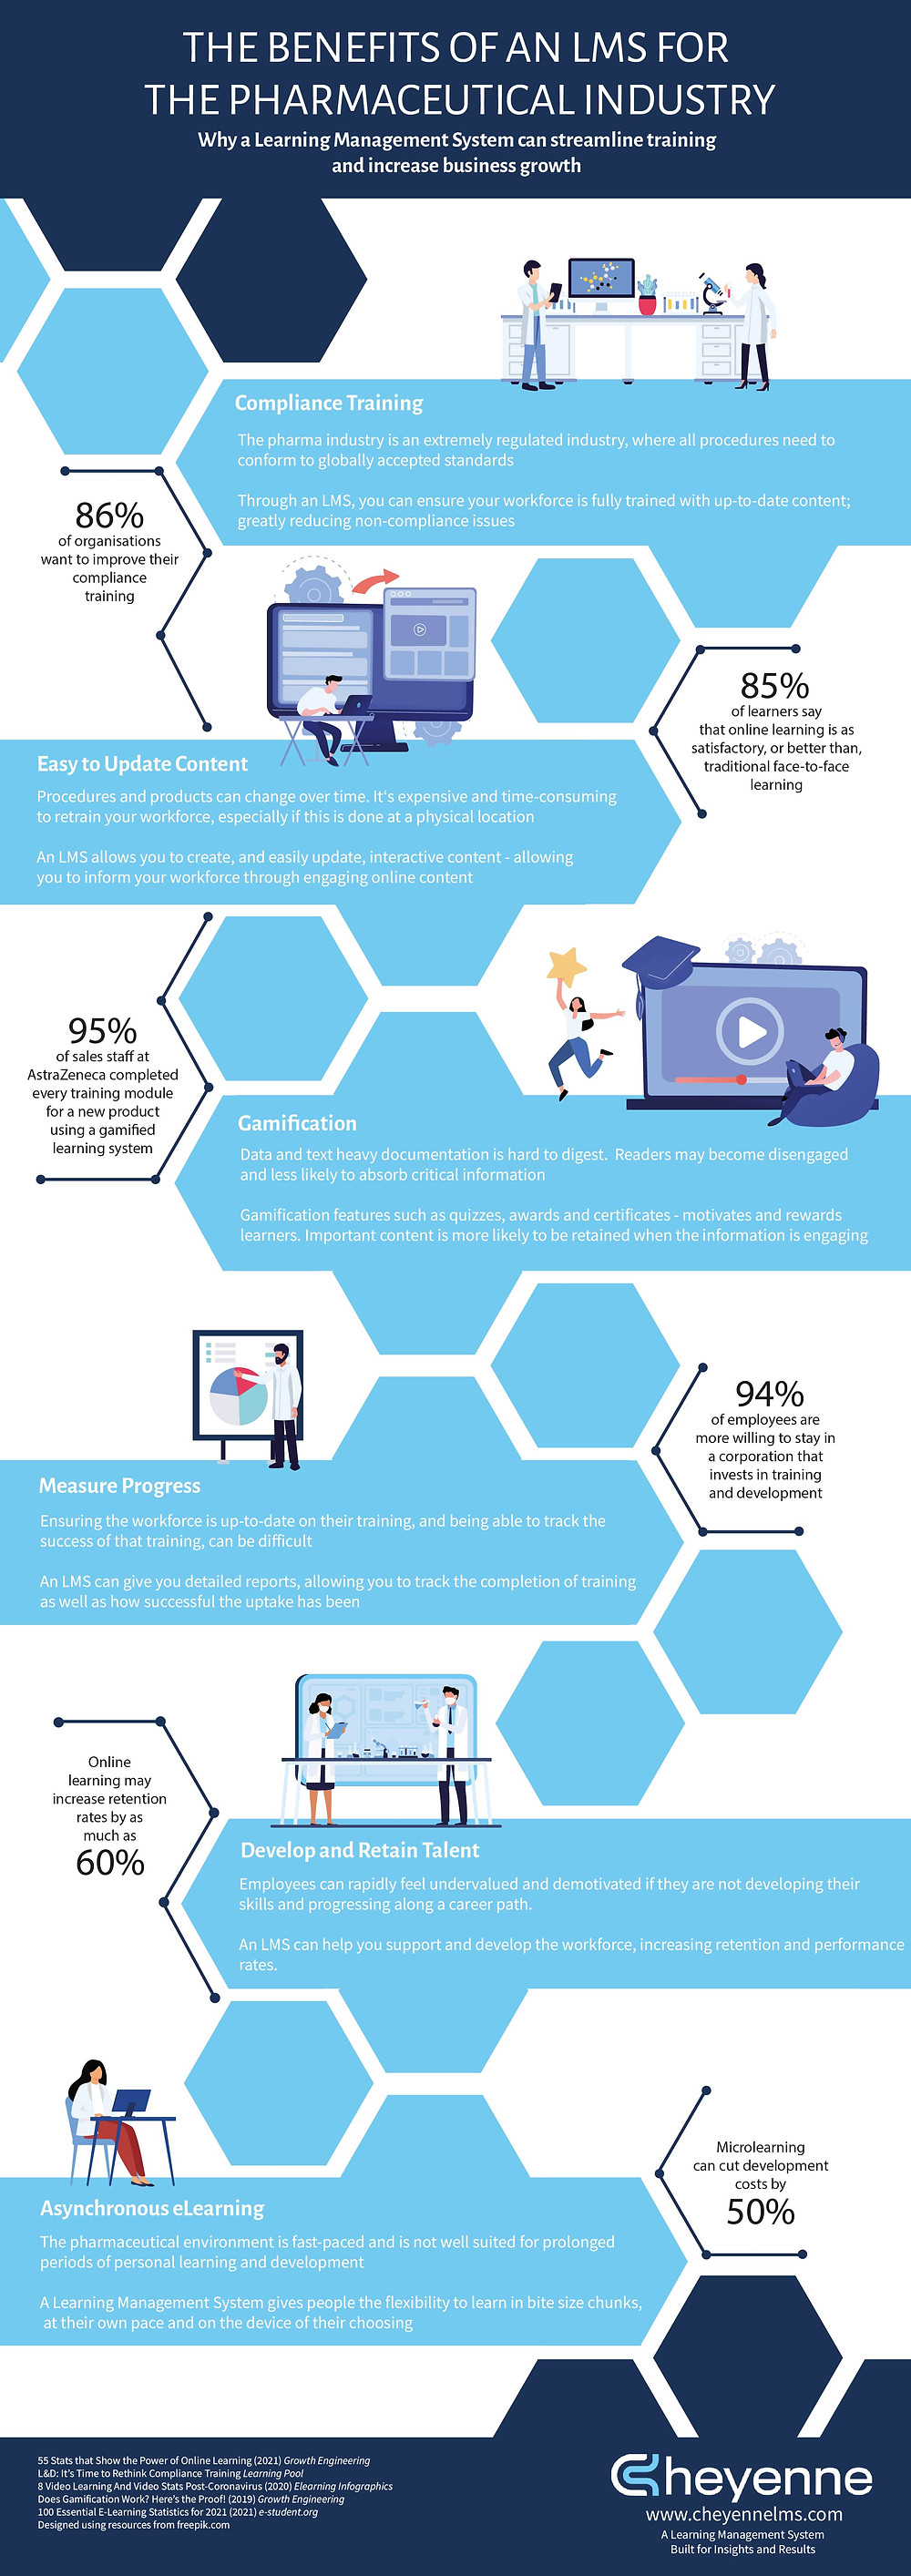 Benefits of an LMS in the Pharmaceutical Industry Infographic